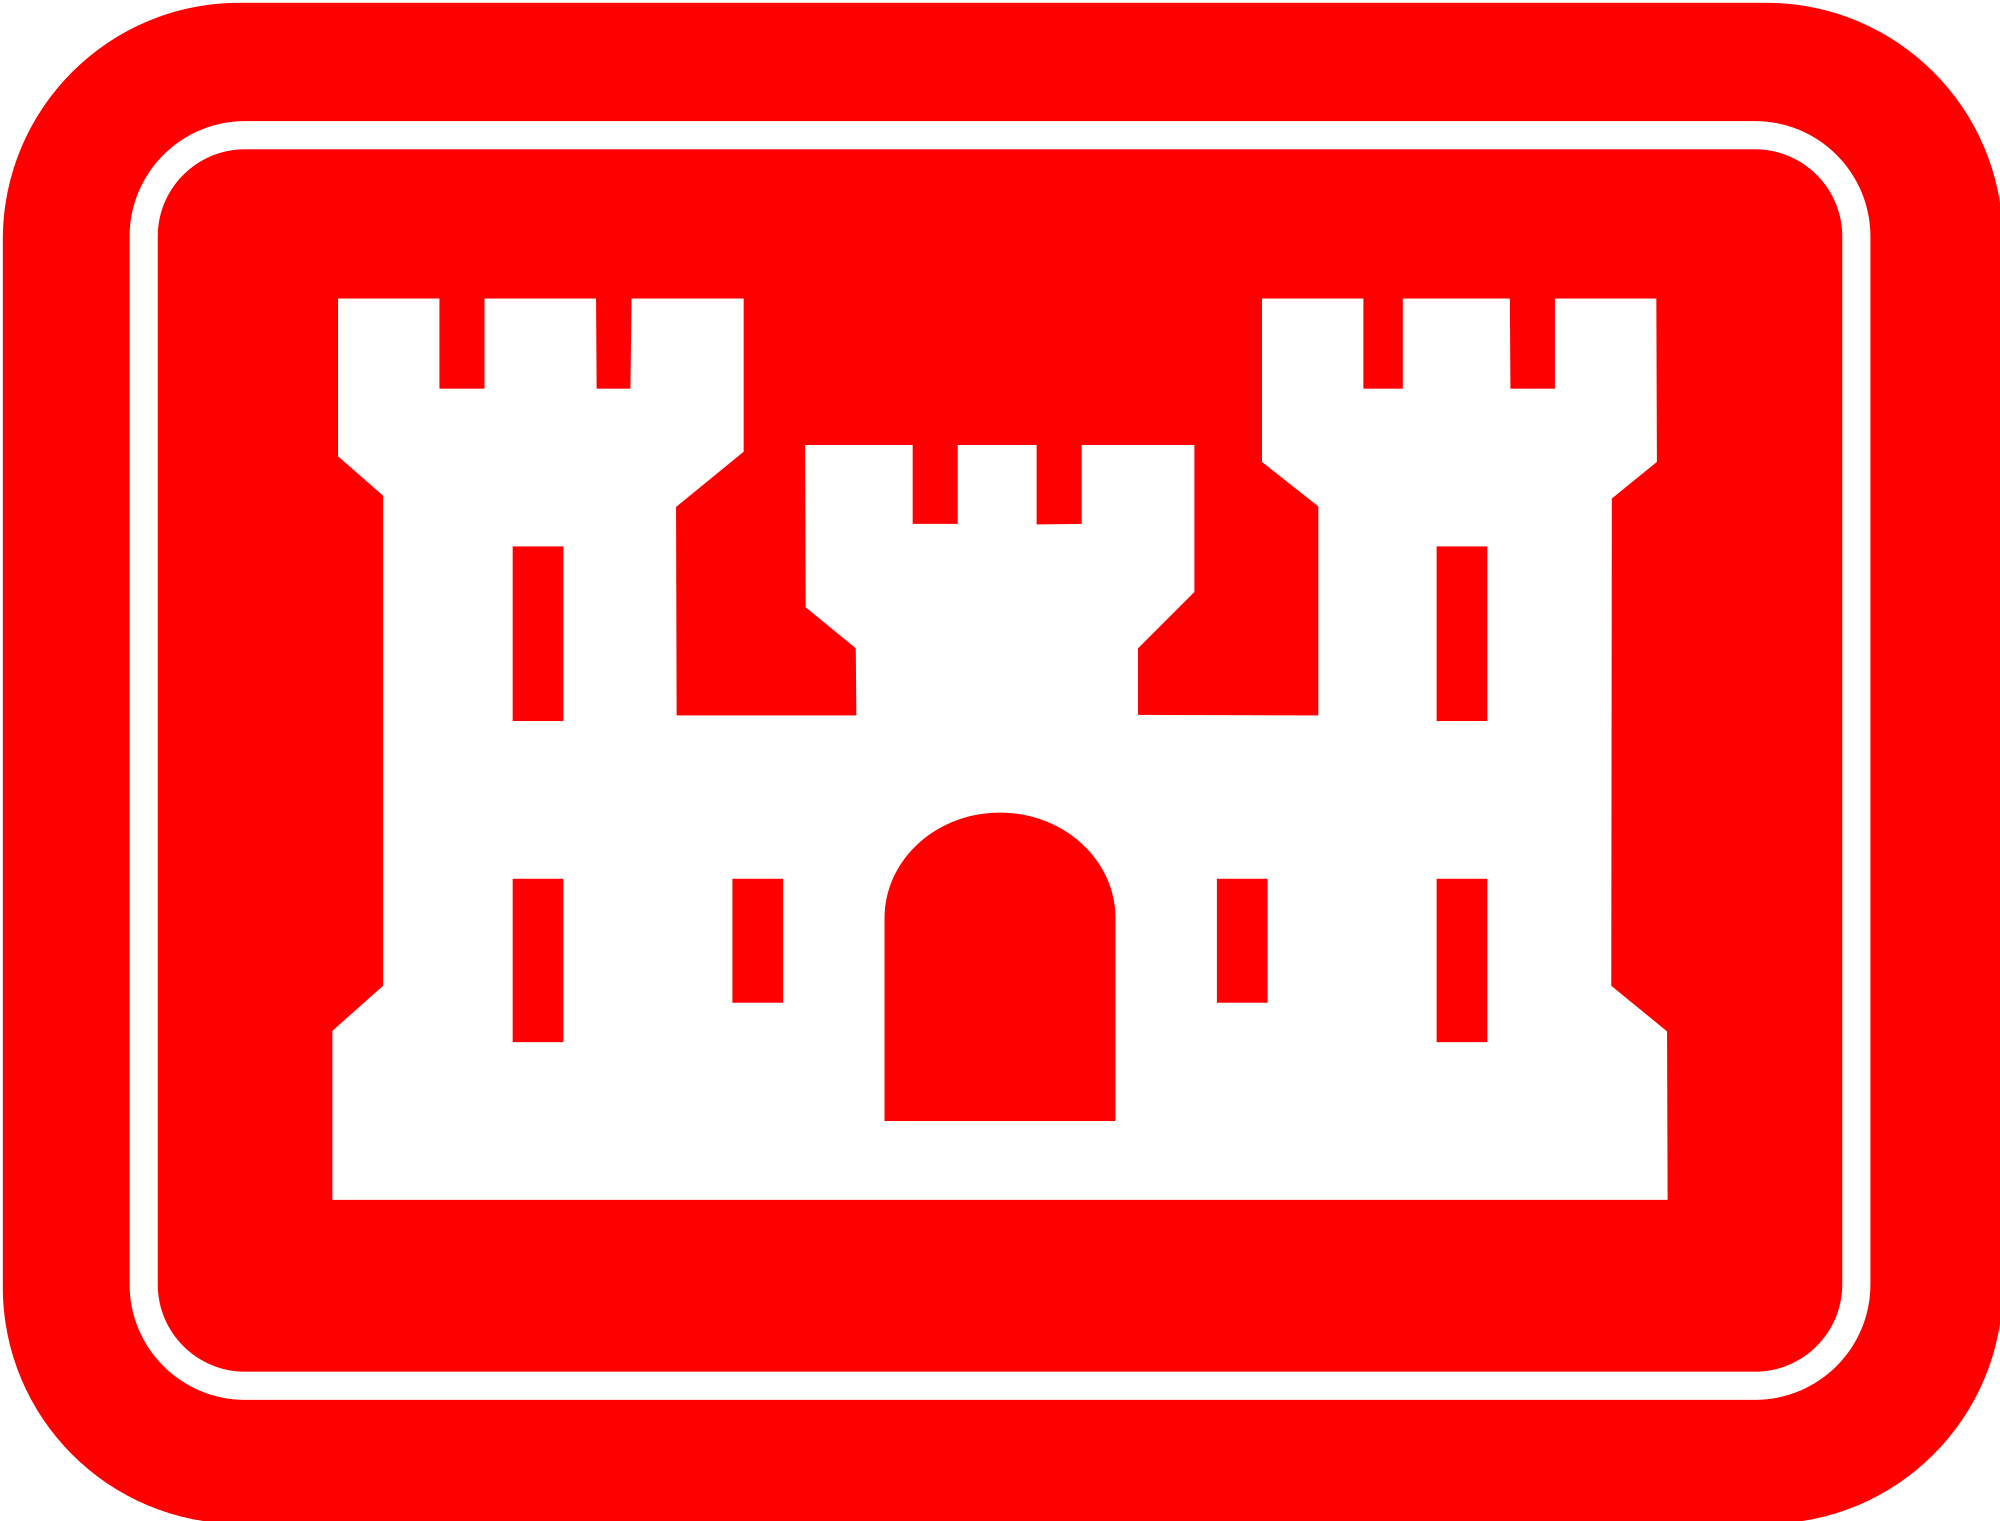 U.S. Army Corps of Engineers (USACE)